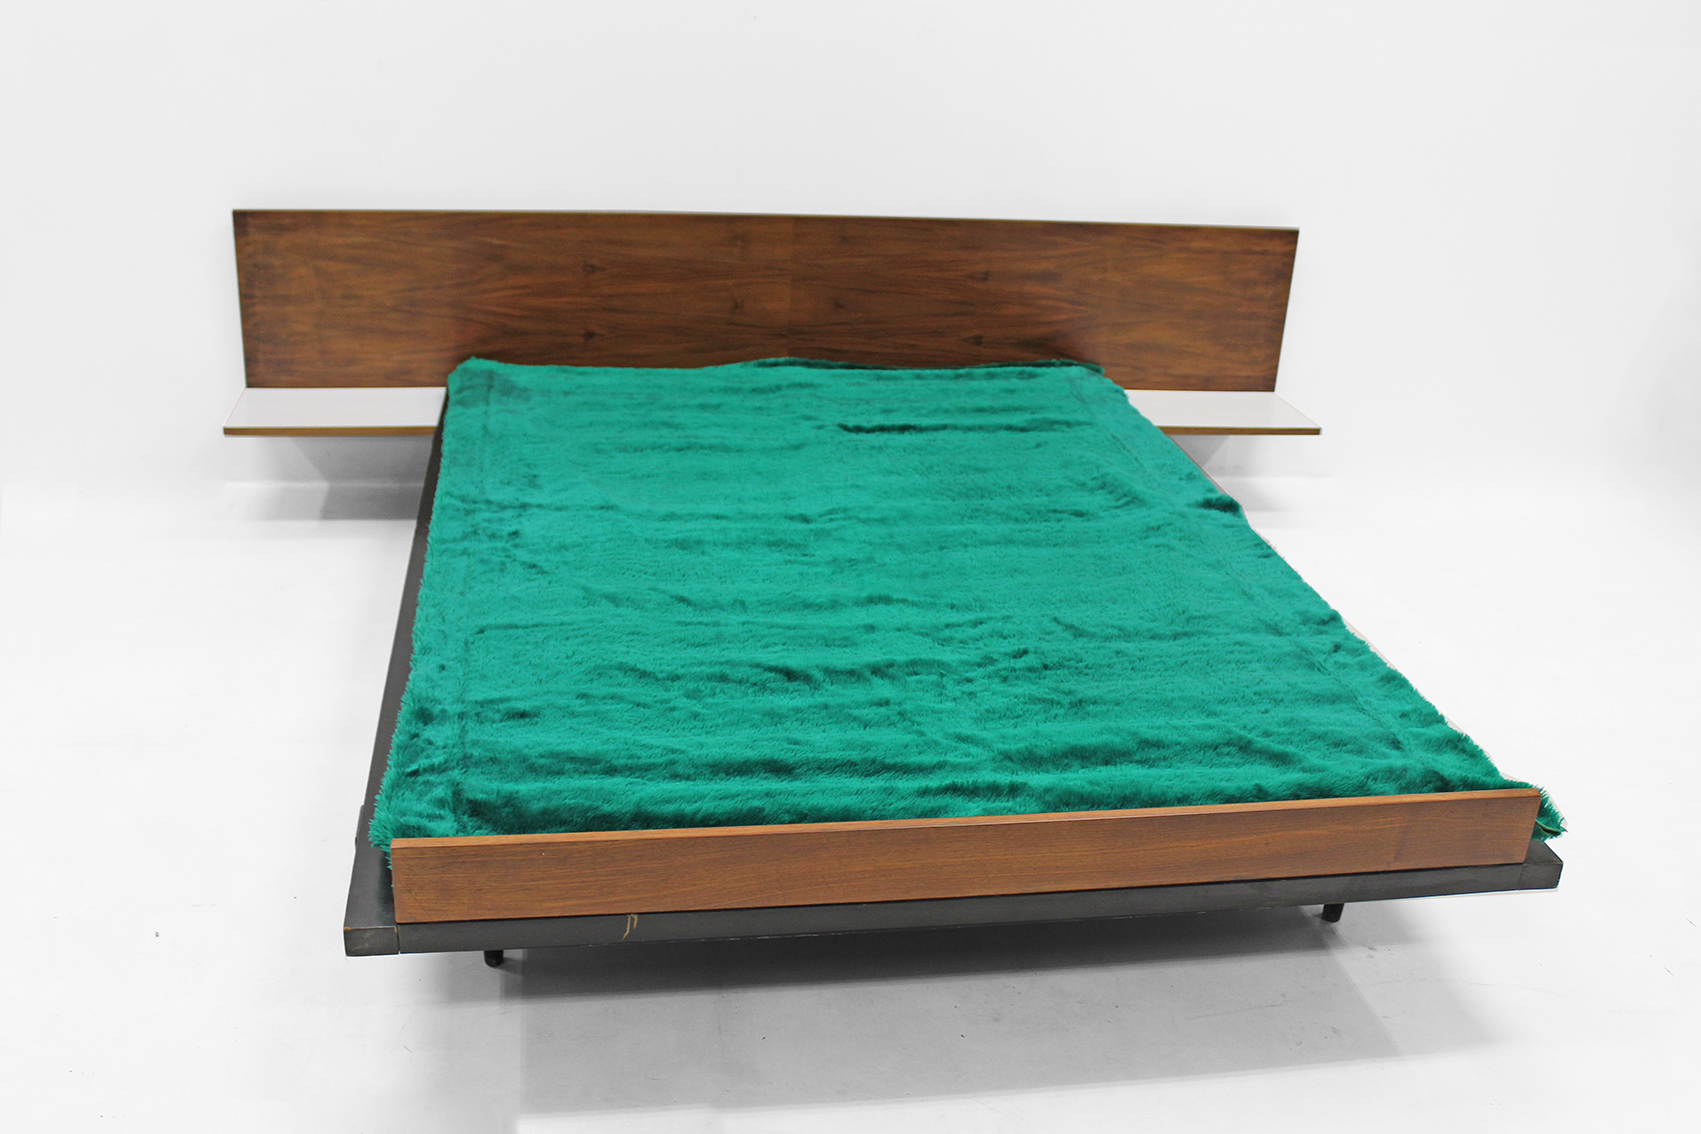 Design bed by Vanden Berghe Pauvers (slatted base incuded)